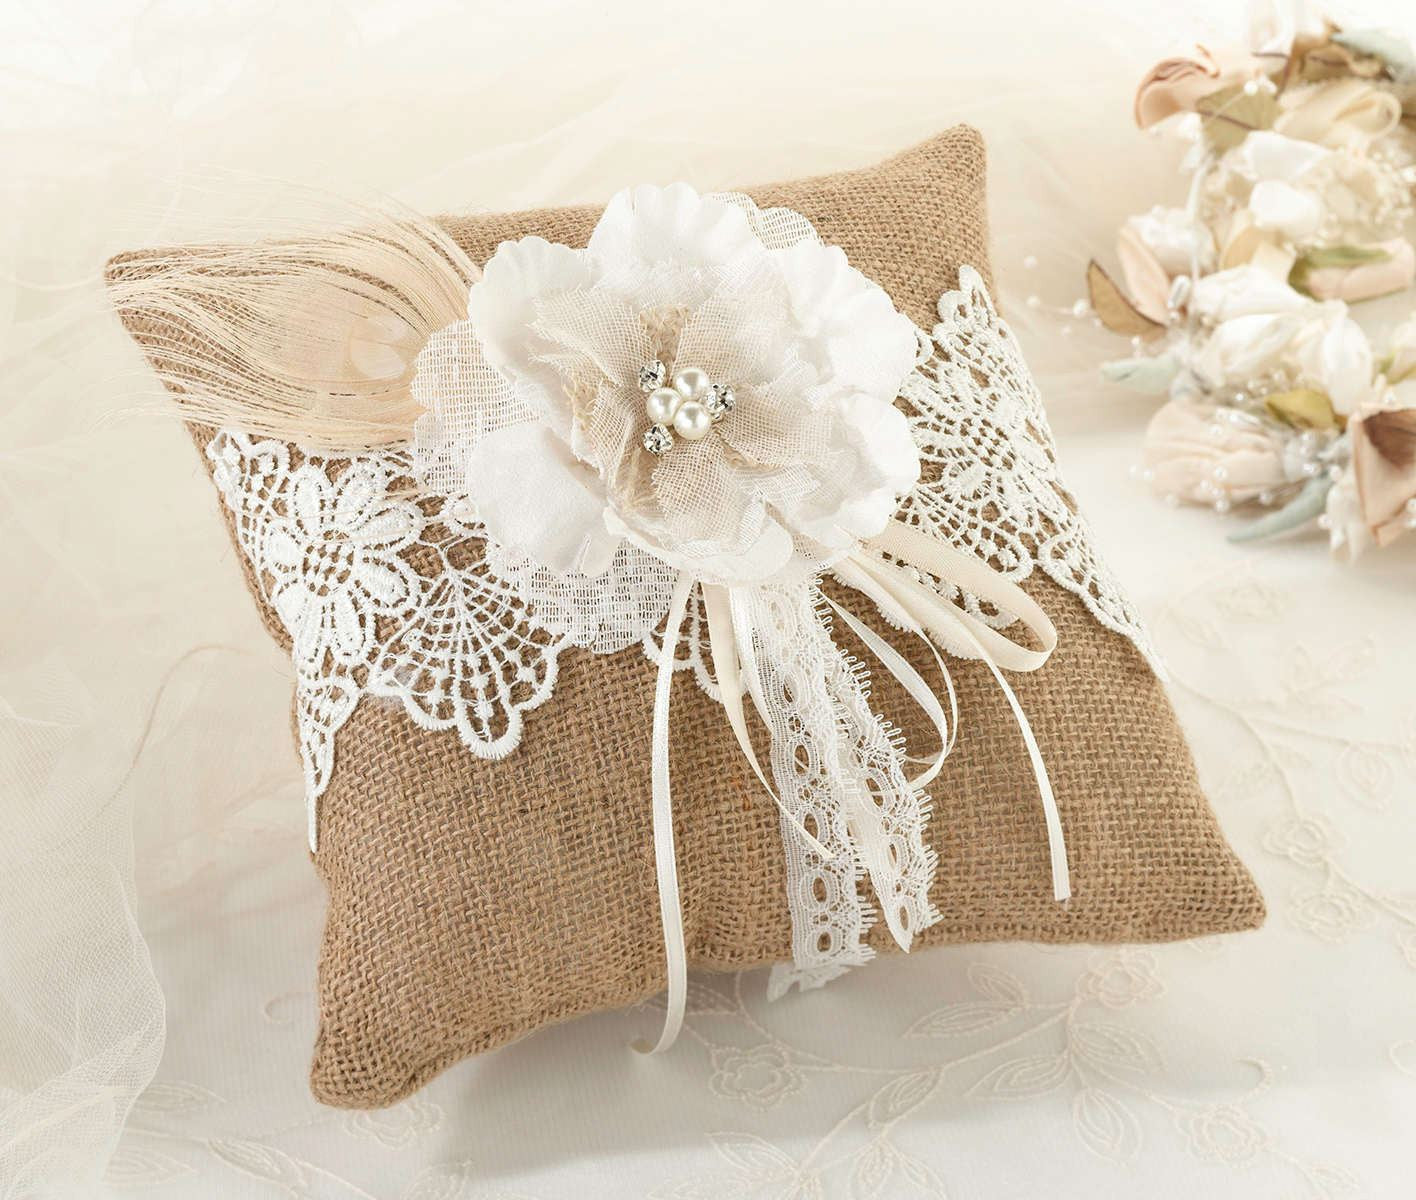 Burlap And Lace Ring Pillow: Wedding Burlap And Lace Ring Pillow At Websimilar.org